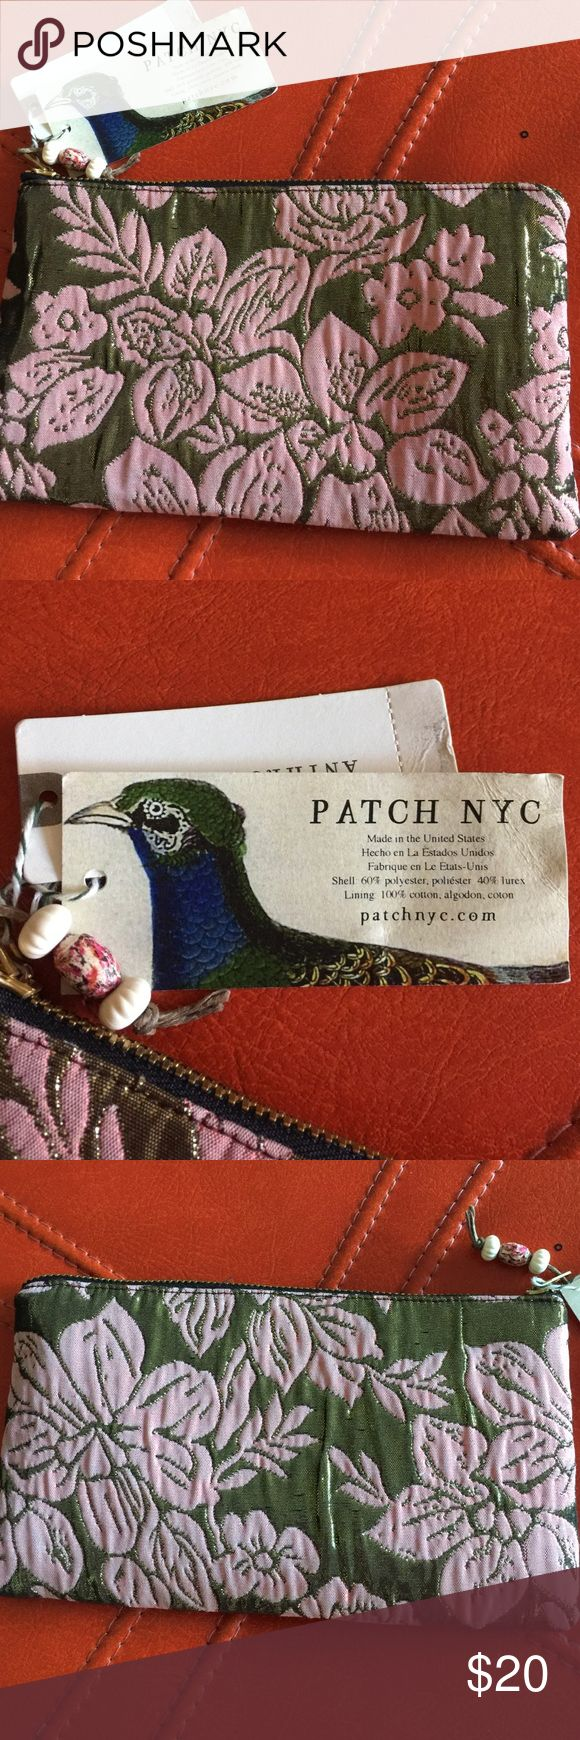 """ANTHROPOLOGIE PATCH NYC COSMETIC BAG MSRP $58-NWT ANTHROPOLOGIE PATCH NYC COSMETIC EVENING BAG - NWT MSRP $58 - COLOR: PINK/ROSE - APPROX. SIZE 8""""W x 4 1/2"""" Anthropologie Patch NYC Bags Cosmetic Bags & Cases"""